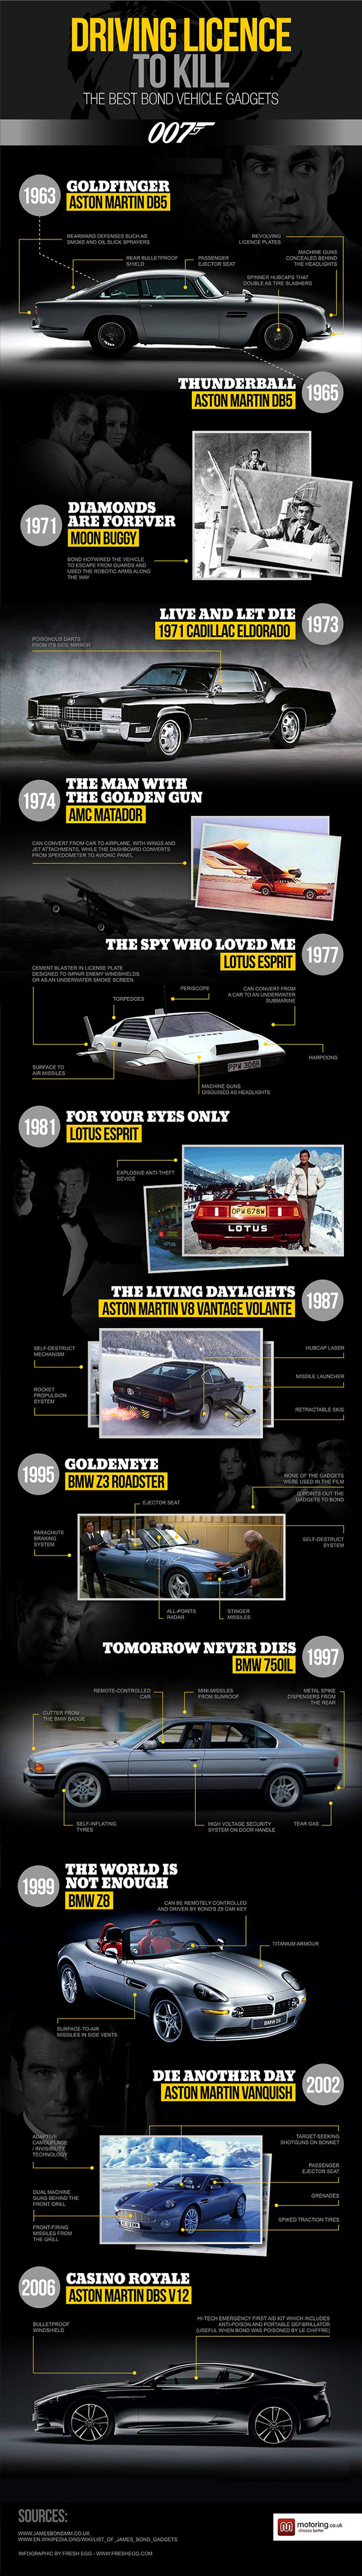 James Bond cars and their gadgets